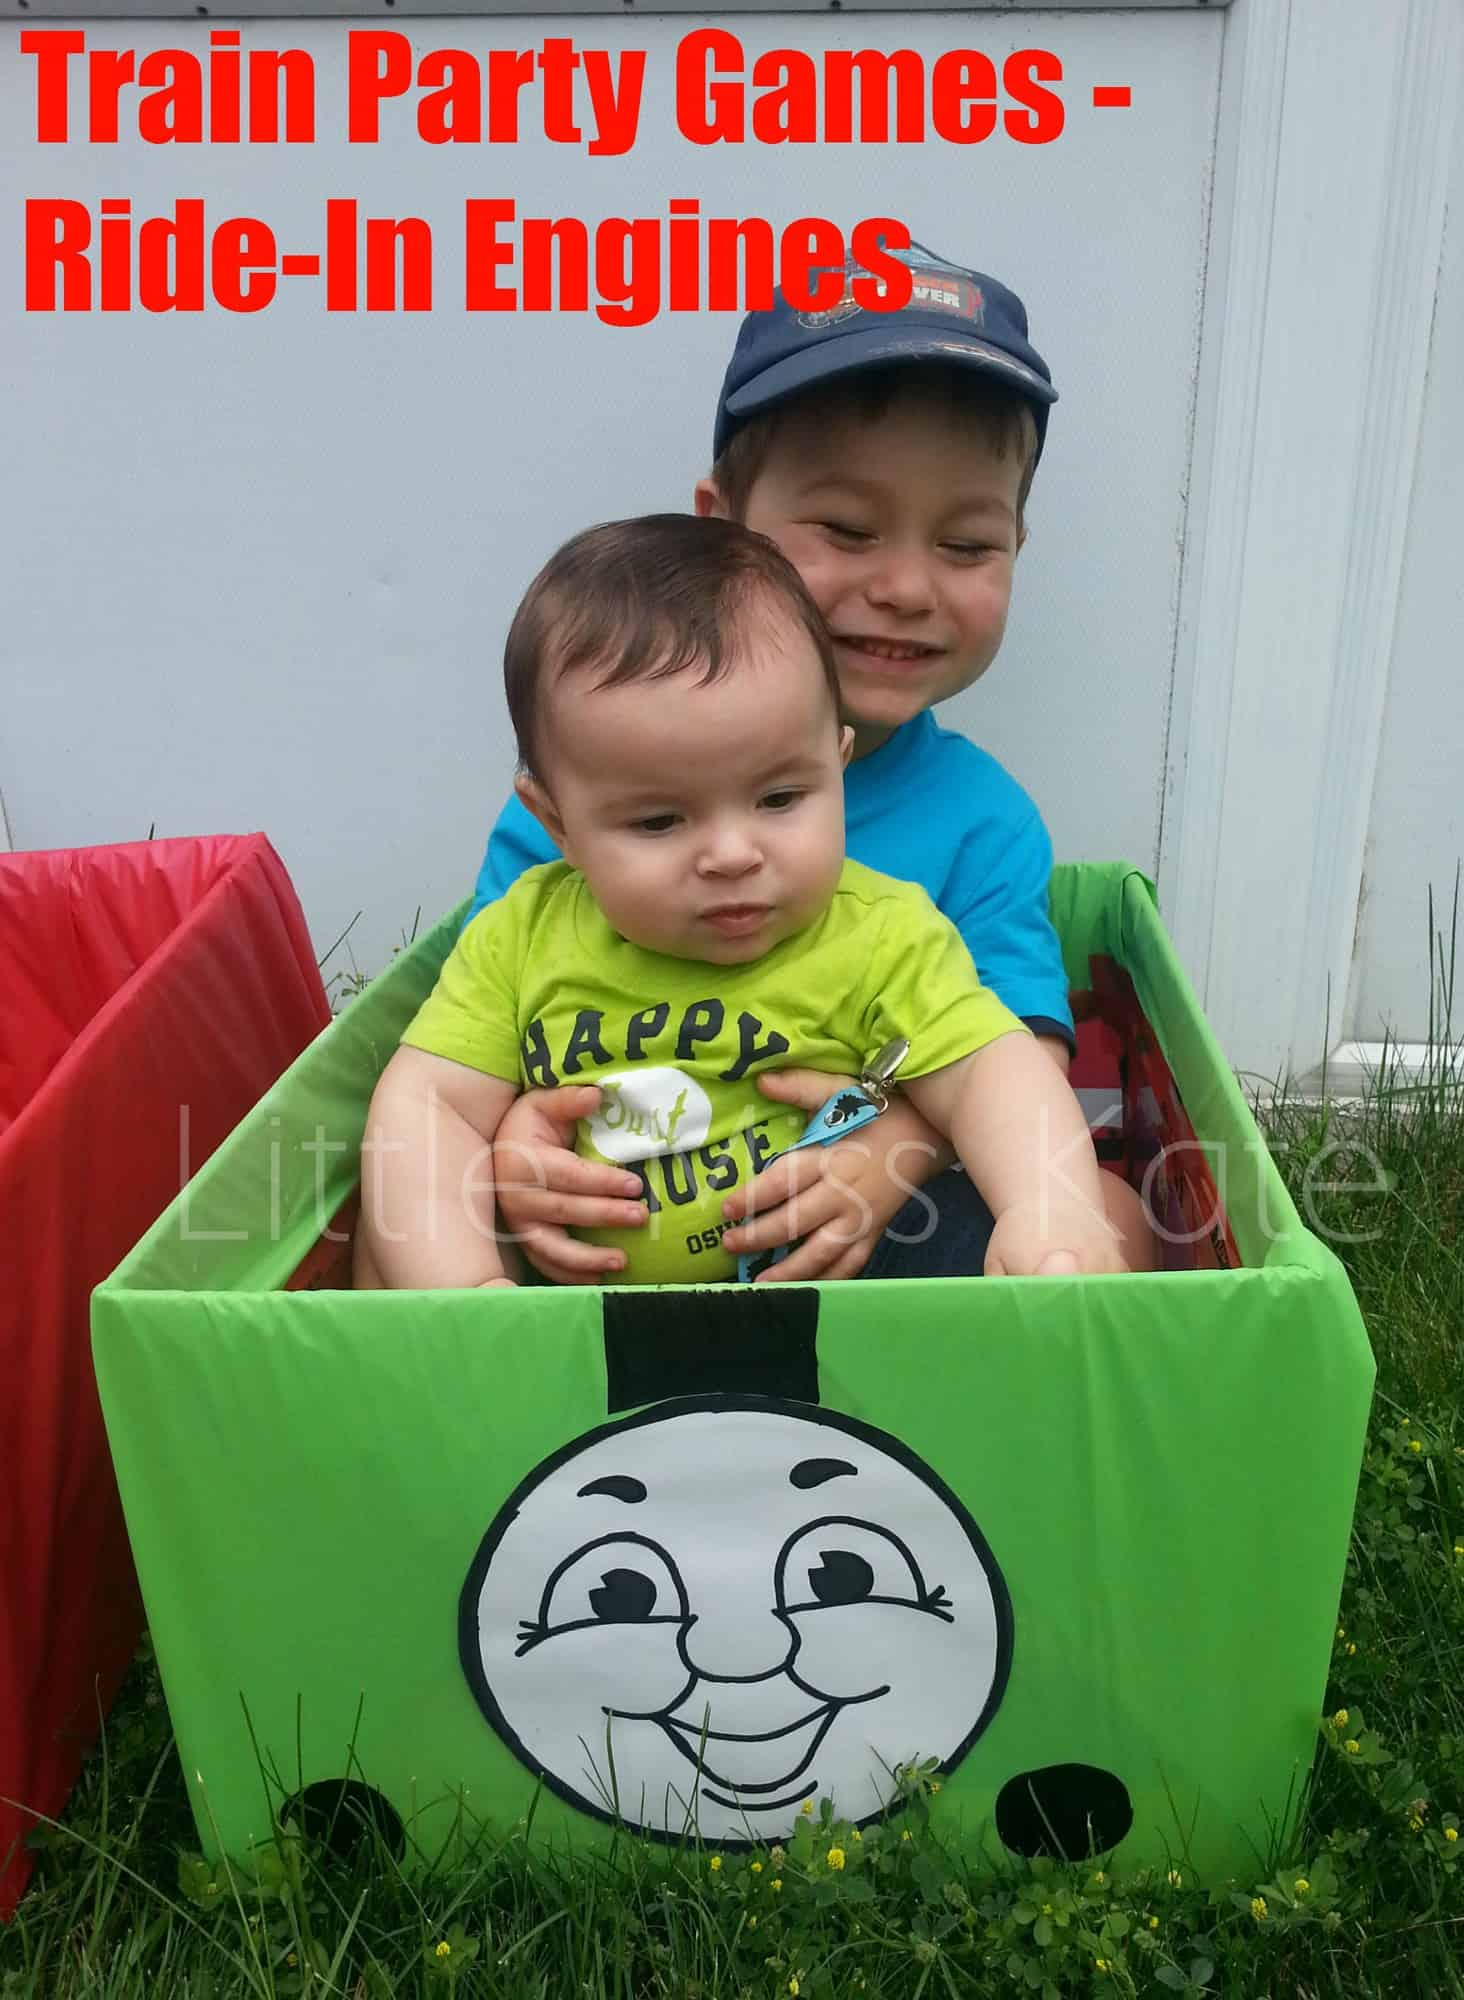 thomas the train engine and friends ride in toys perfect for a train party games little. Black Bedroom Furniture Sets. Home Design Ideas